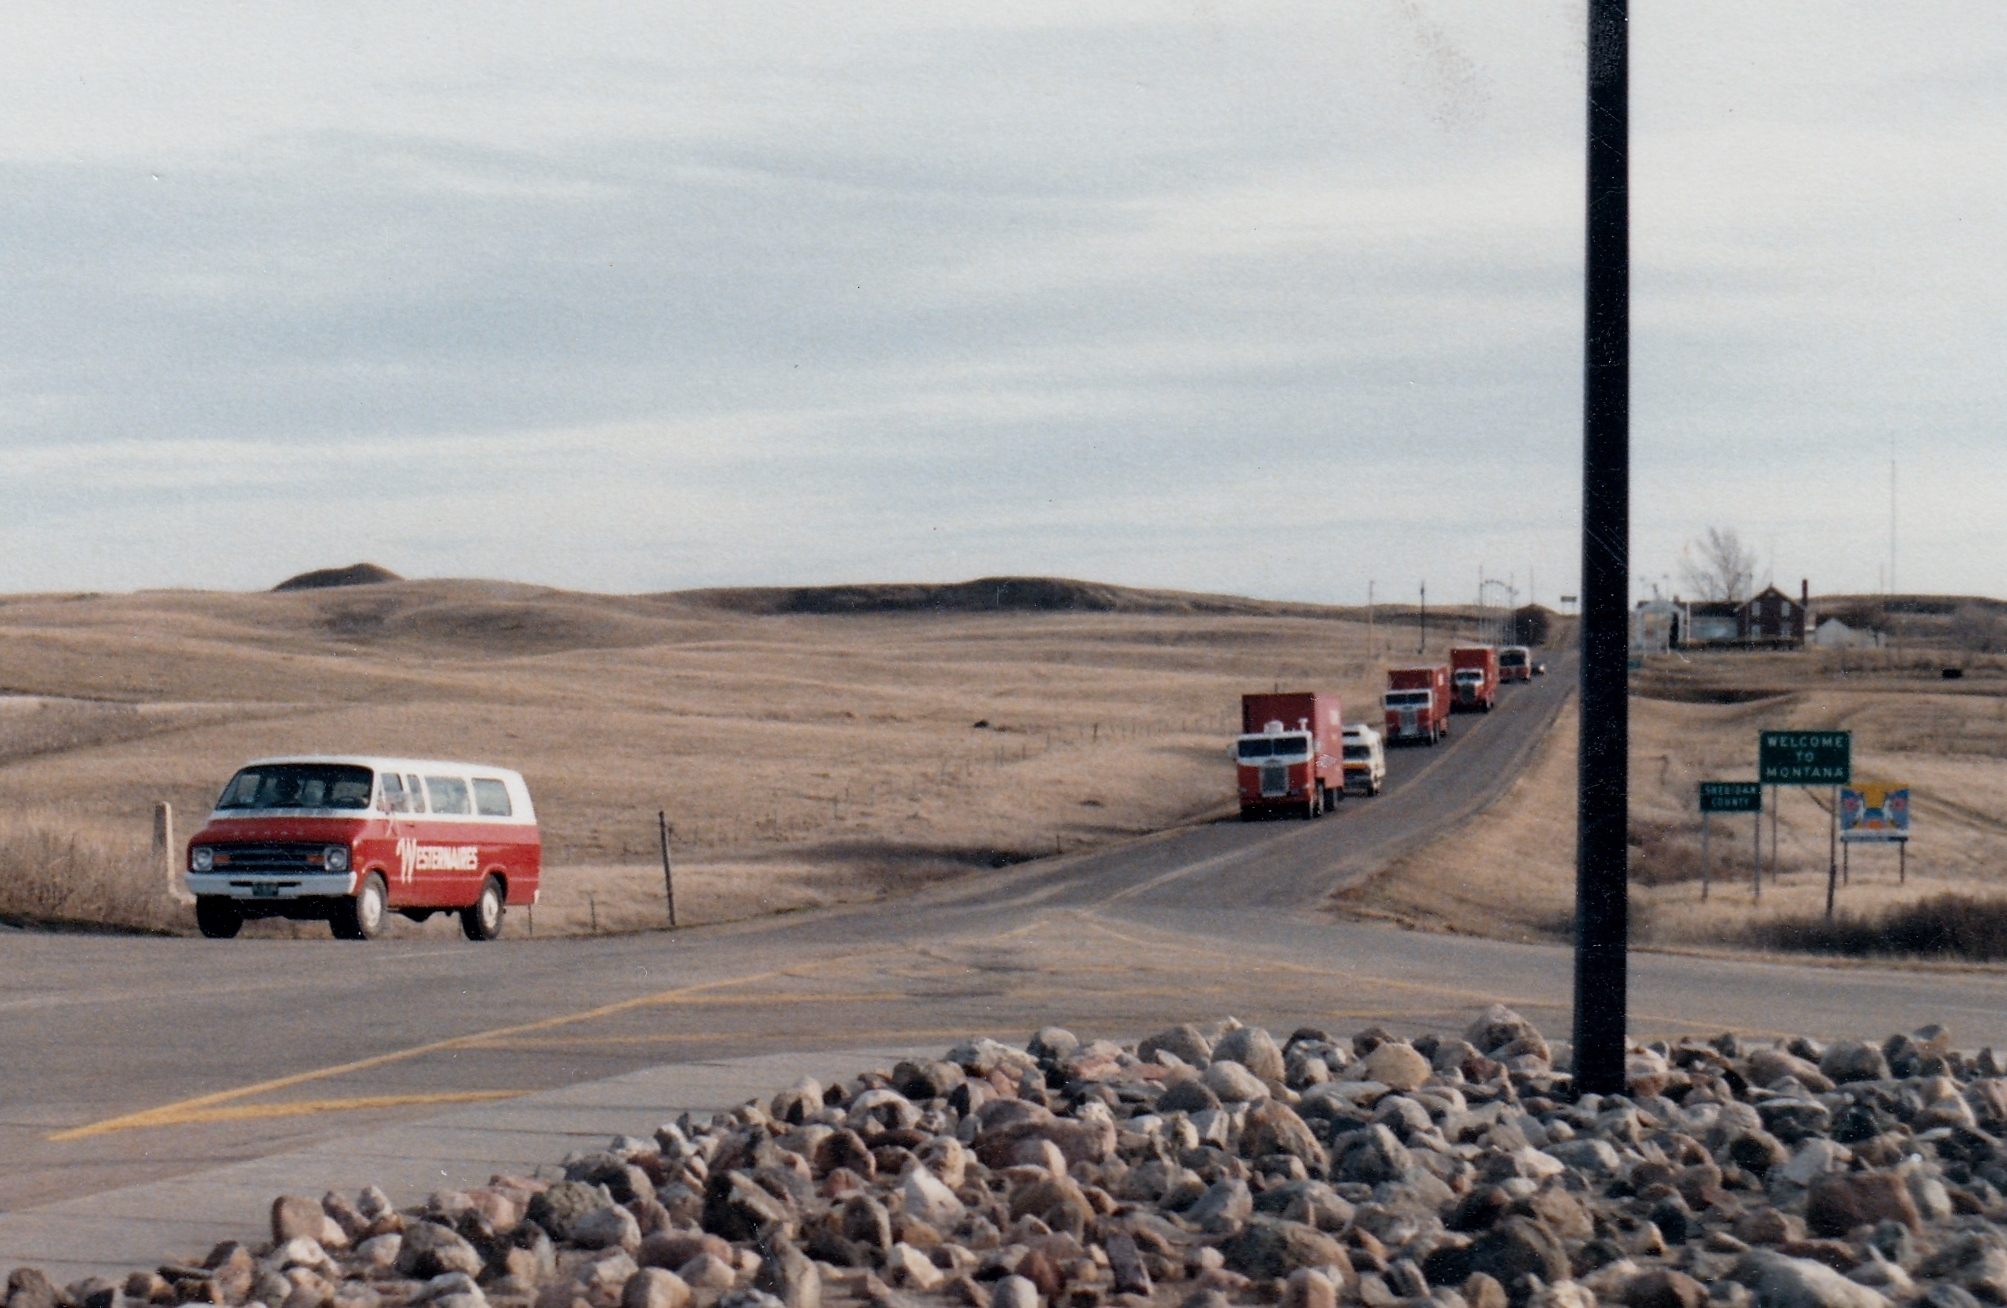 """The Westernaires convoy heads southbound across the Canadian/U.S. border and into Montana, March of 1986. Border agents (who were likely unaccustomed to seeing dozens of teenagers and their horses crossing the border) decided to be a bit difficult and required that every horse be unloaded from the horse vans. Satisfied after their inspection, the horses were quickly reloaded. The border agents were reportedly """"amazed""""at the organization and ease by which the Westernaires could load their horses onto the semis."""